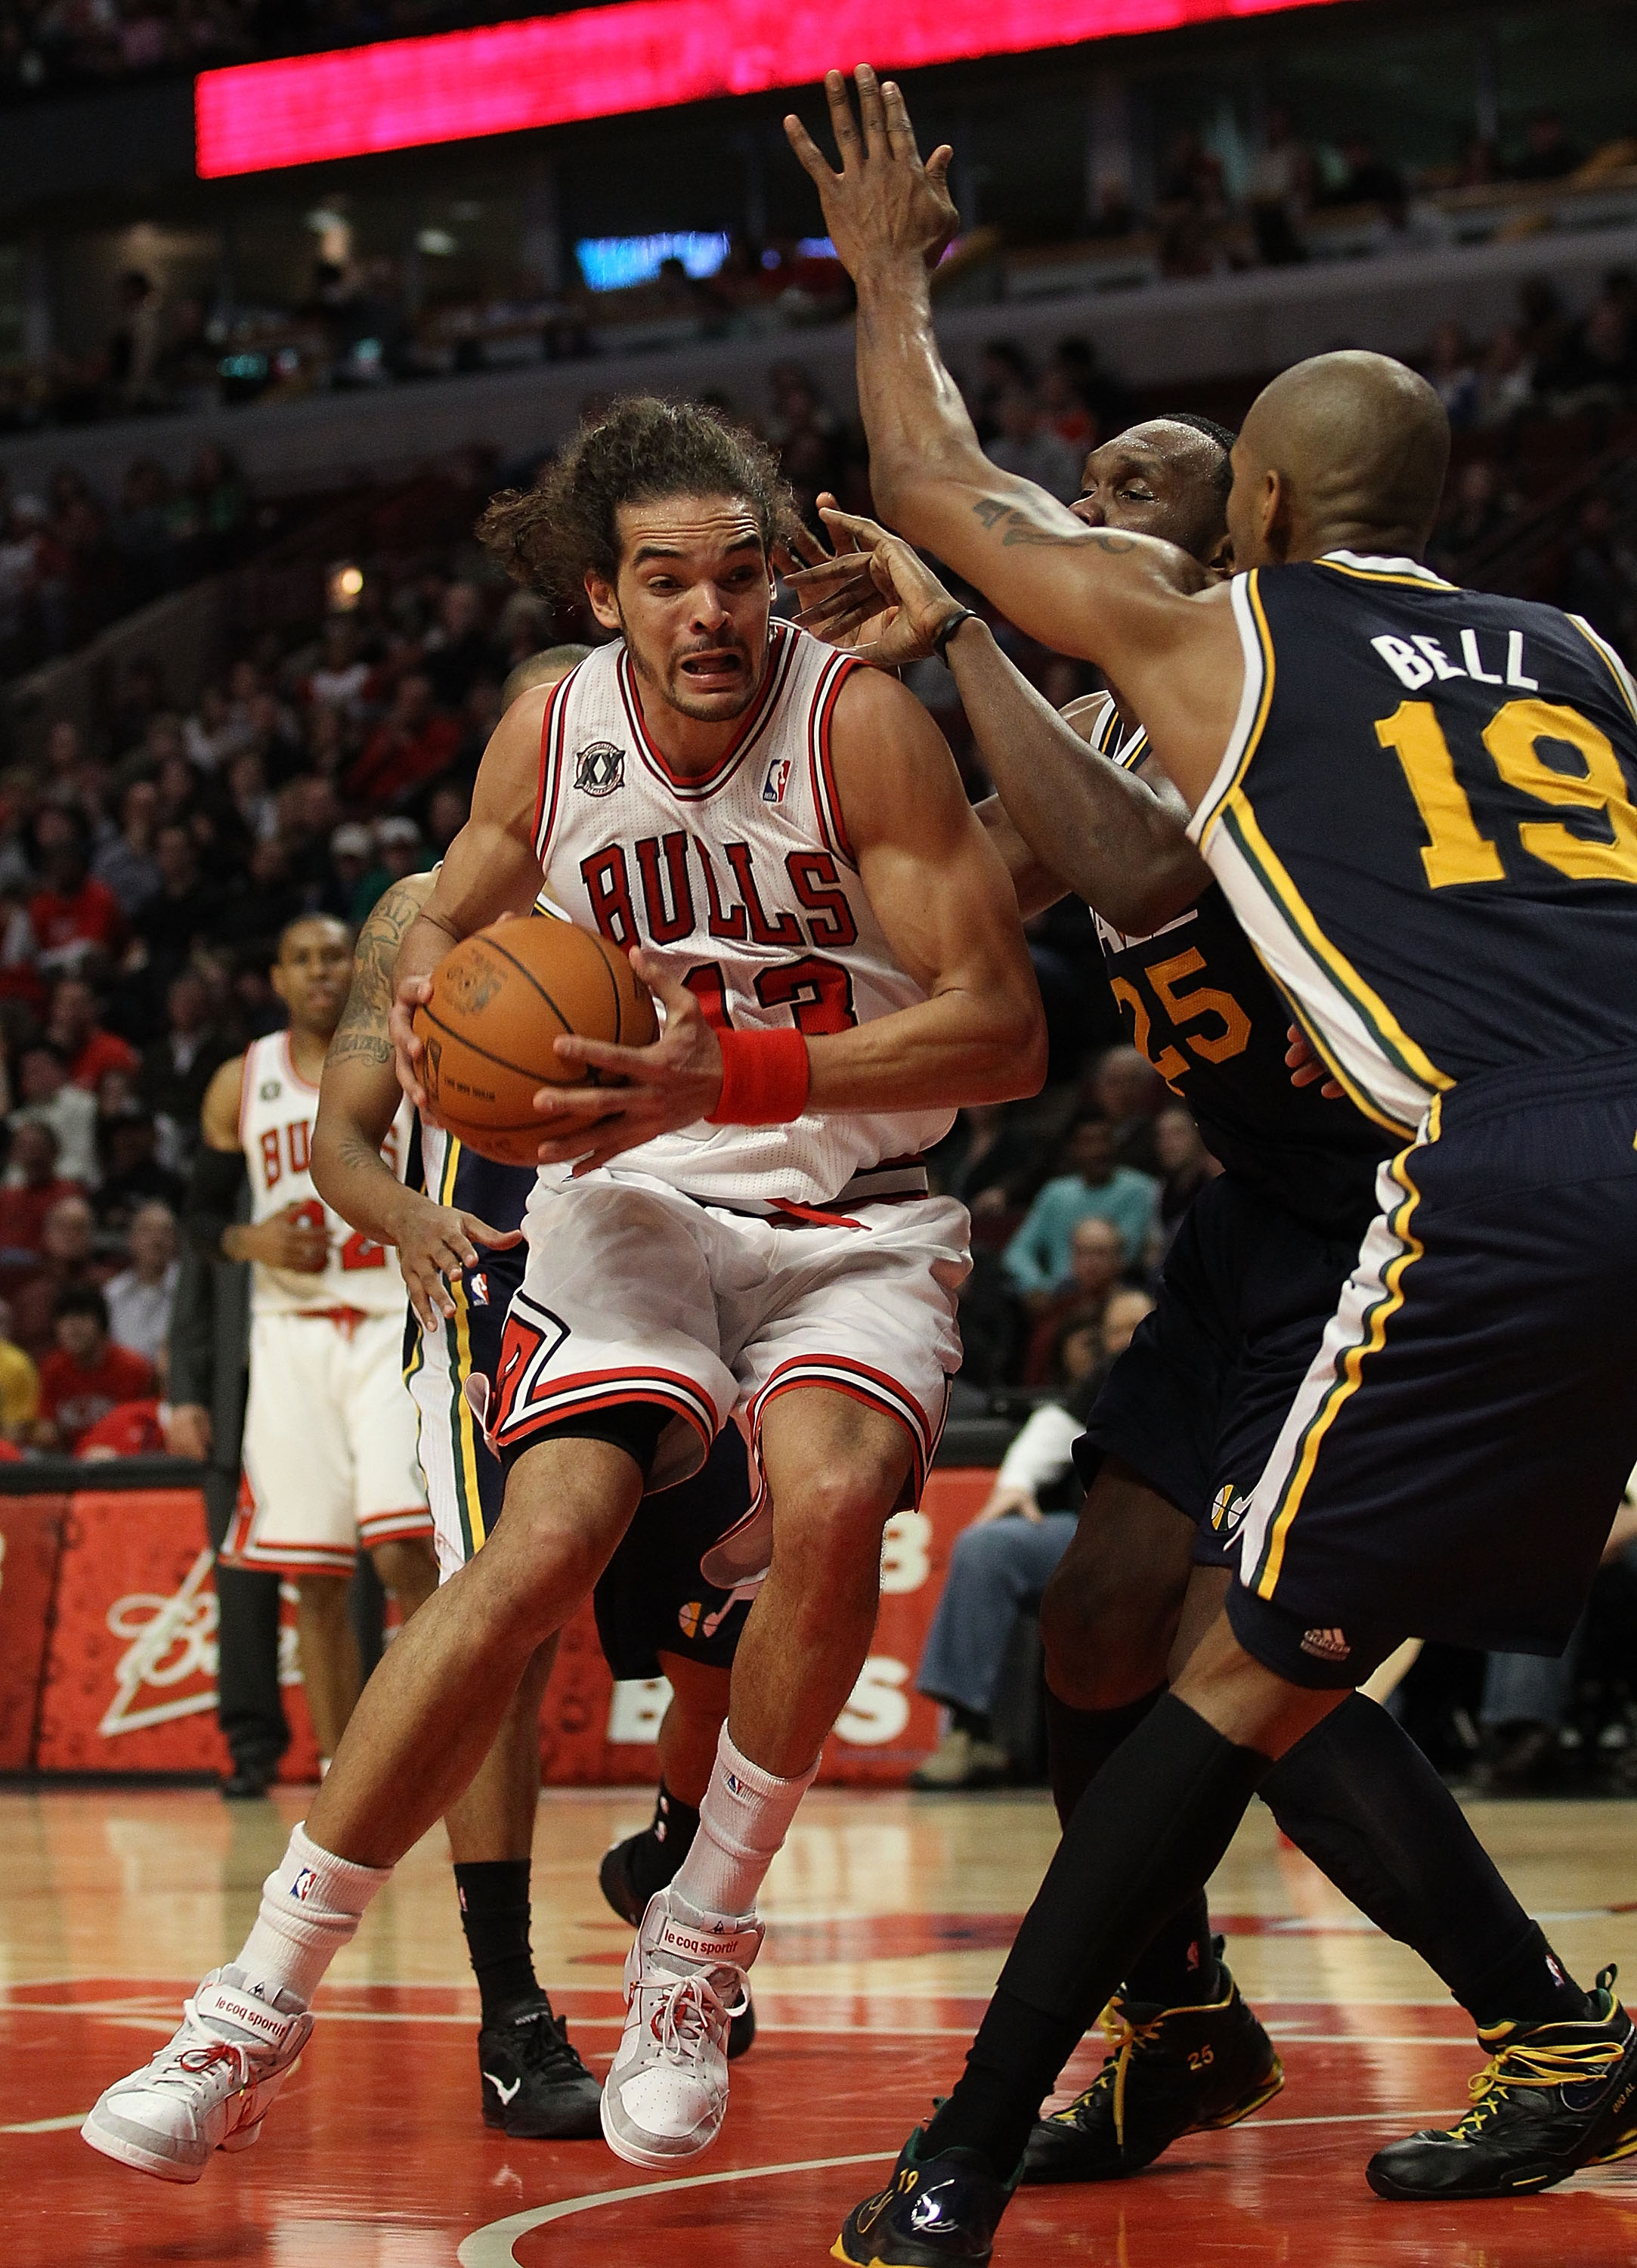 CHICAGO, IL - MARCH 12: Joakim Noah #13 of the Chicago Bulls drives against Al Jefferson #25 and Raja Bell #19 of the Utah Jazz at the United Center on March 12, 2011 in Chicago, Illinois. The Bulls defeated the Jazz 118-100. NOTE TO USER: User expressly